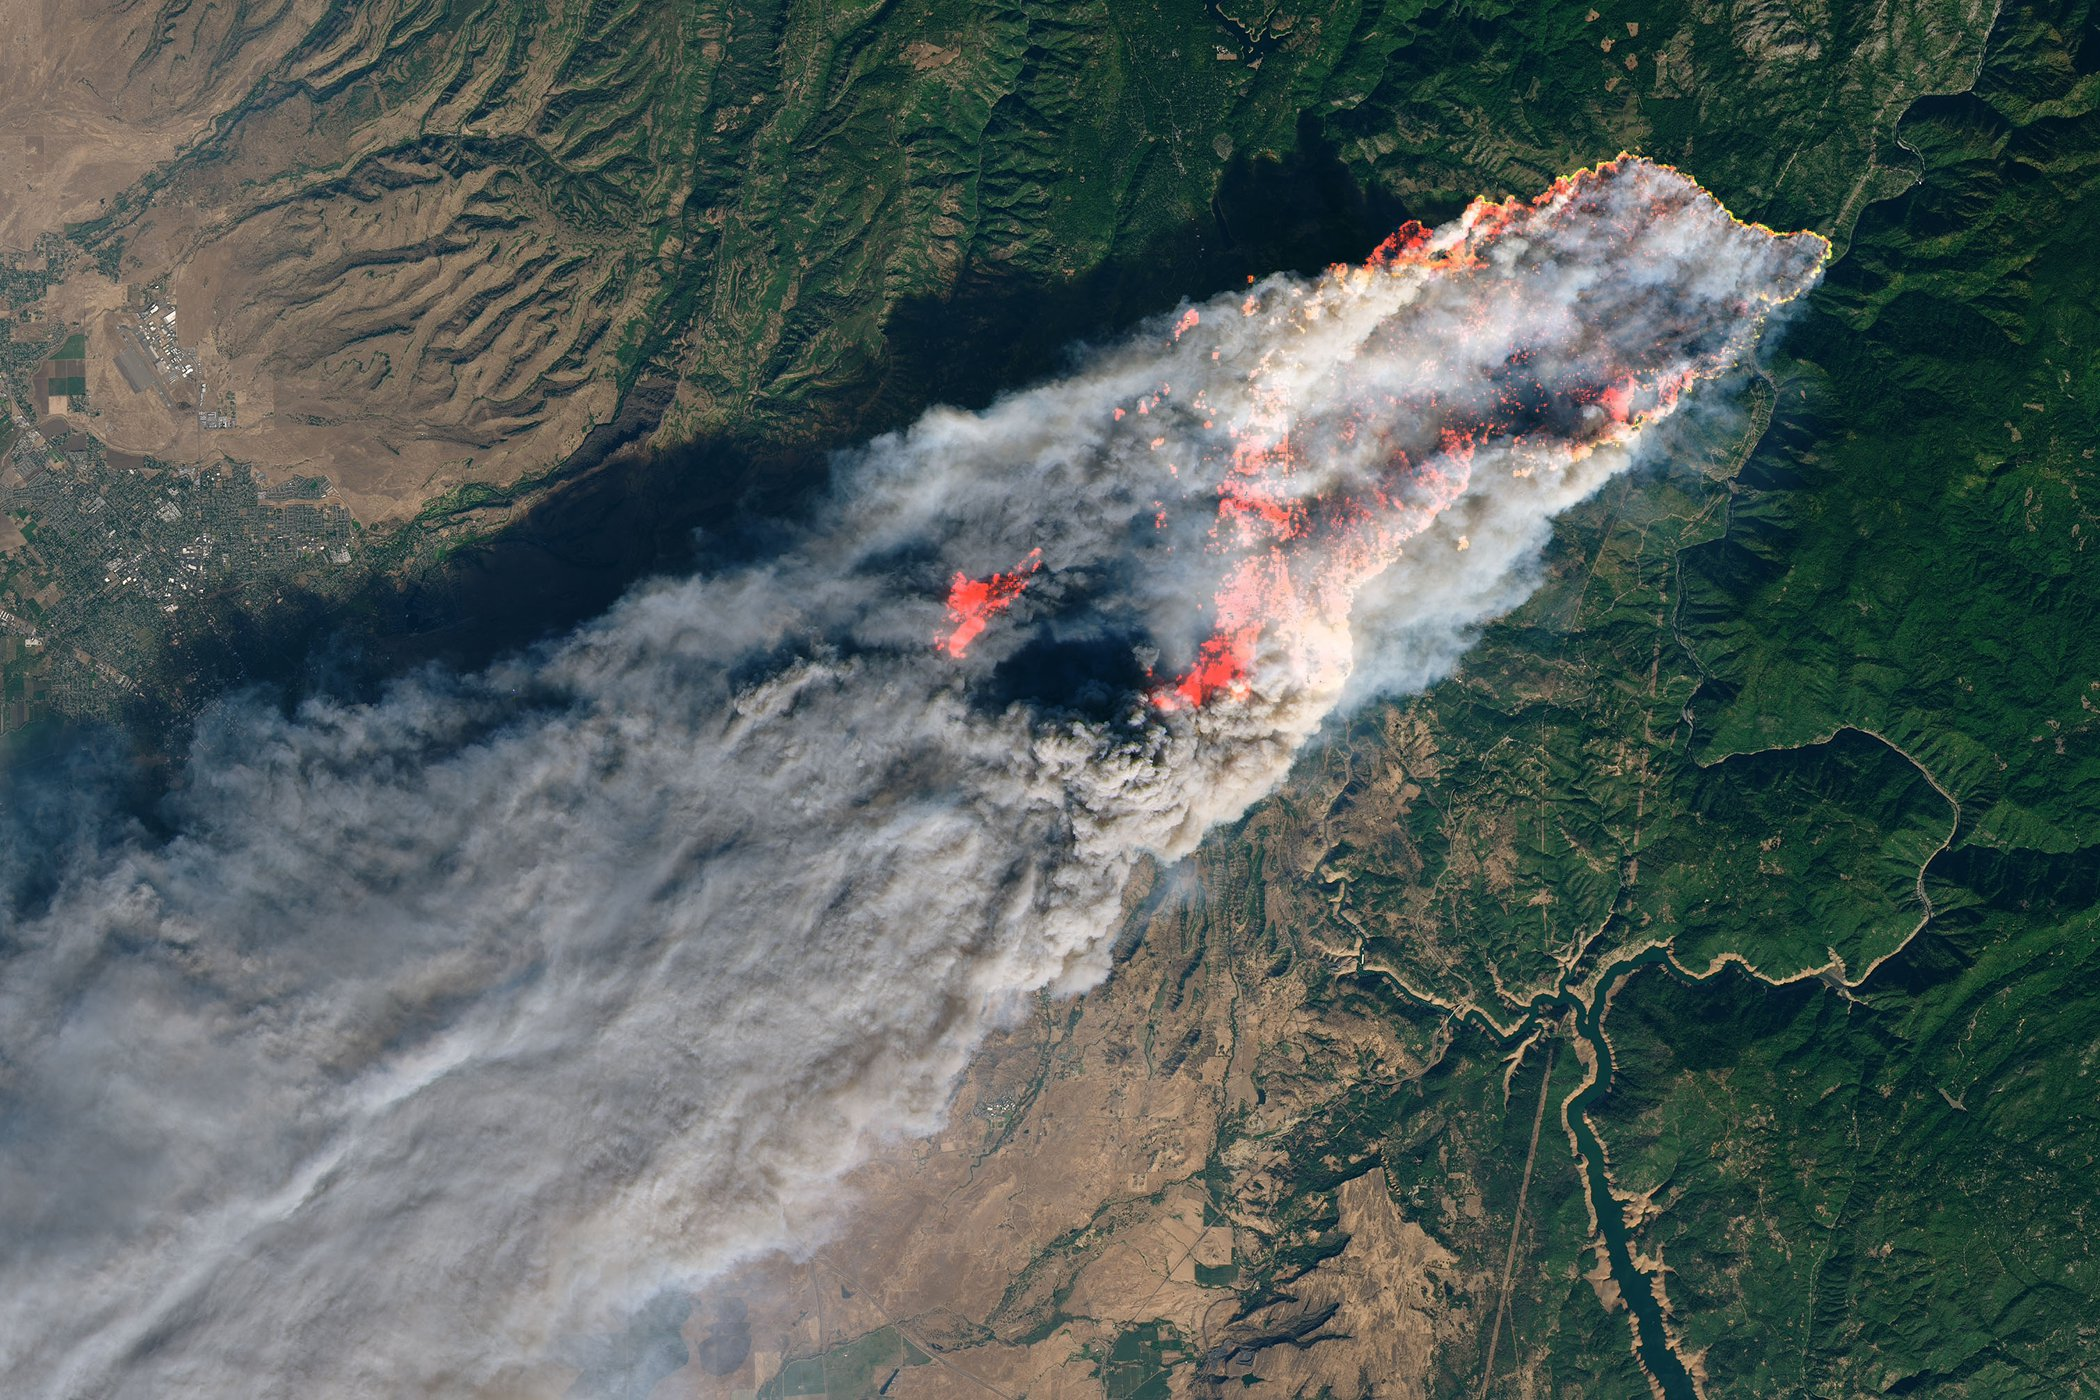 Northern-California-Wildfires-Camp-Fire-NASA.jpg